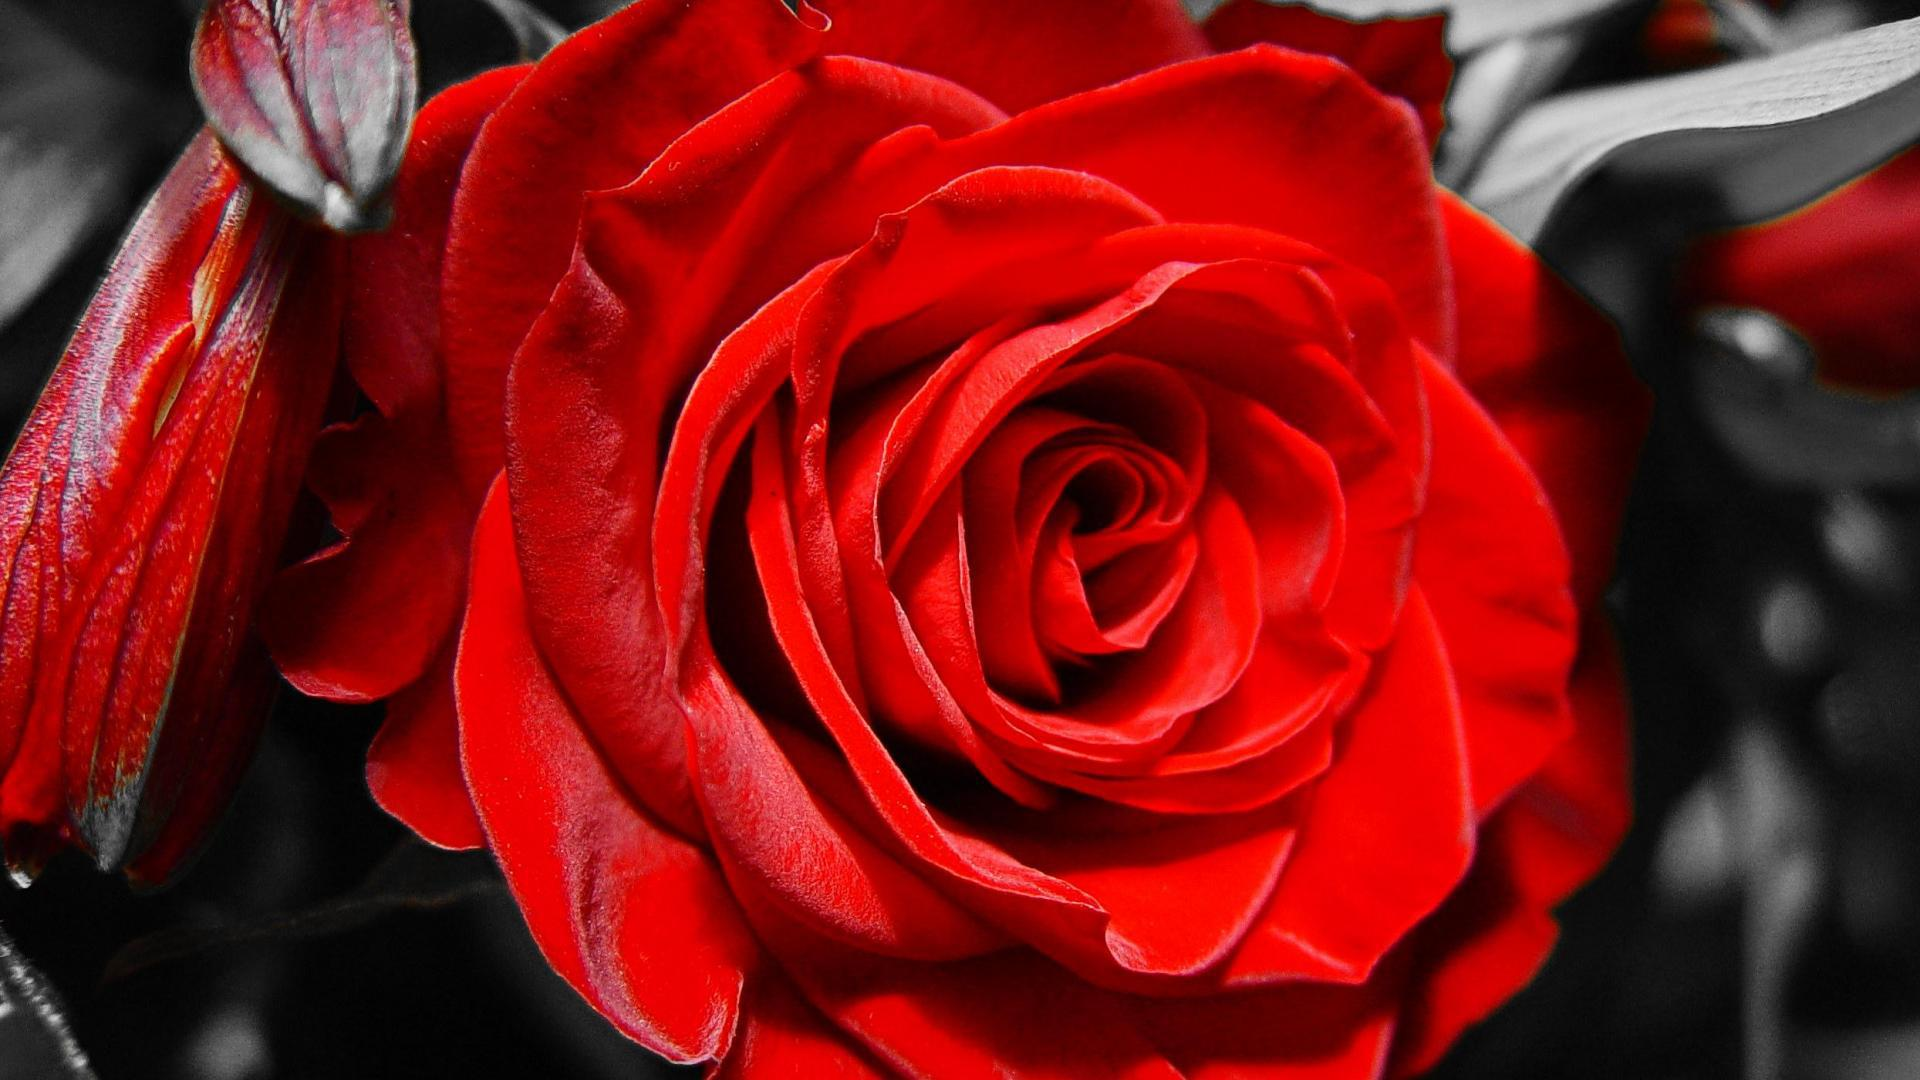 Go Back Images For Black And White Red Rose Wallpaper 1920x1080